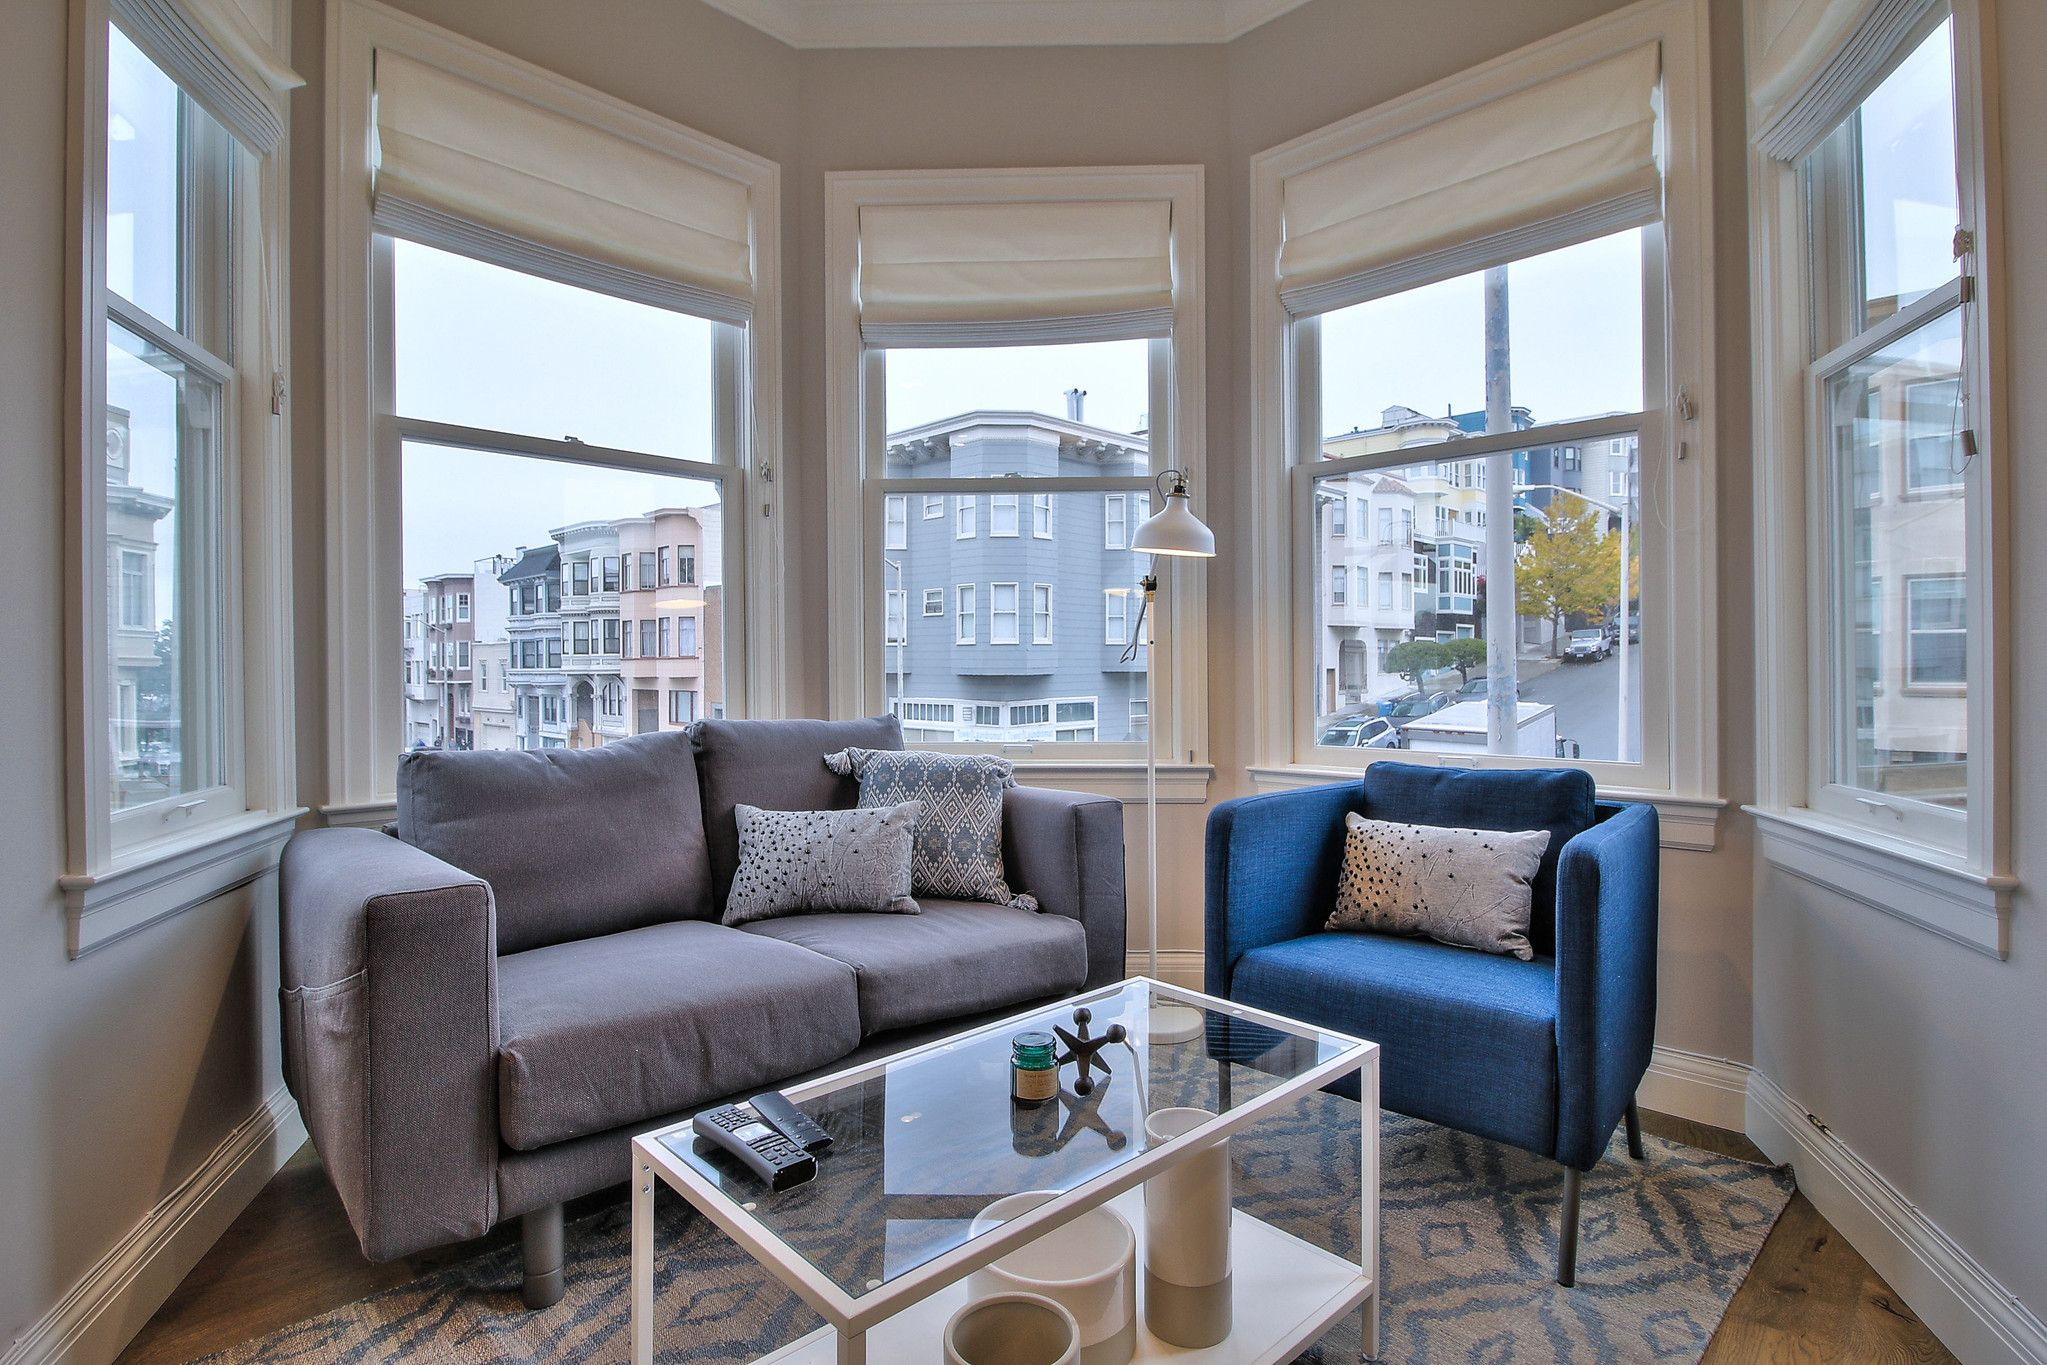 Contemporary 2br In Trendy North Beach Zeus Living San Francisco Apartment Apartments For Rent San Francisco